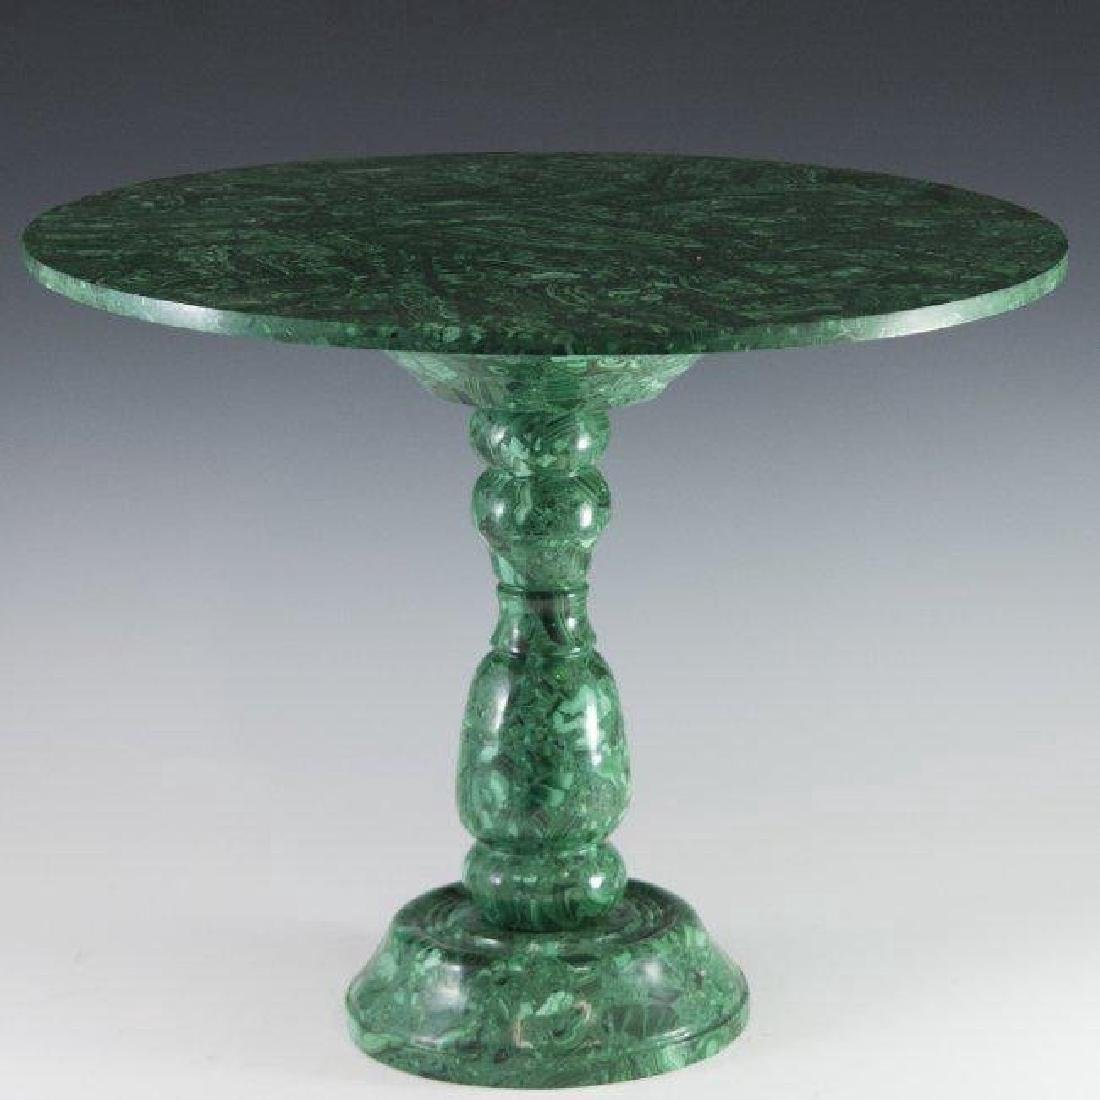 A MALACHITE SIDE TABLE